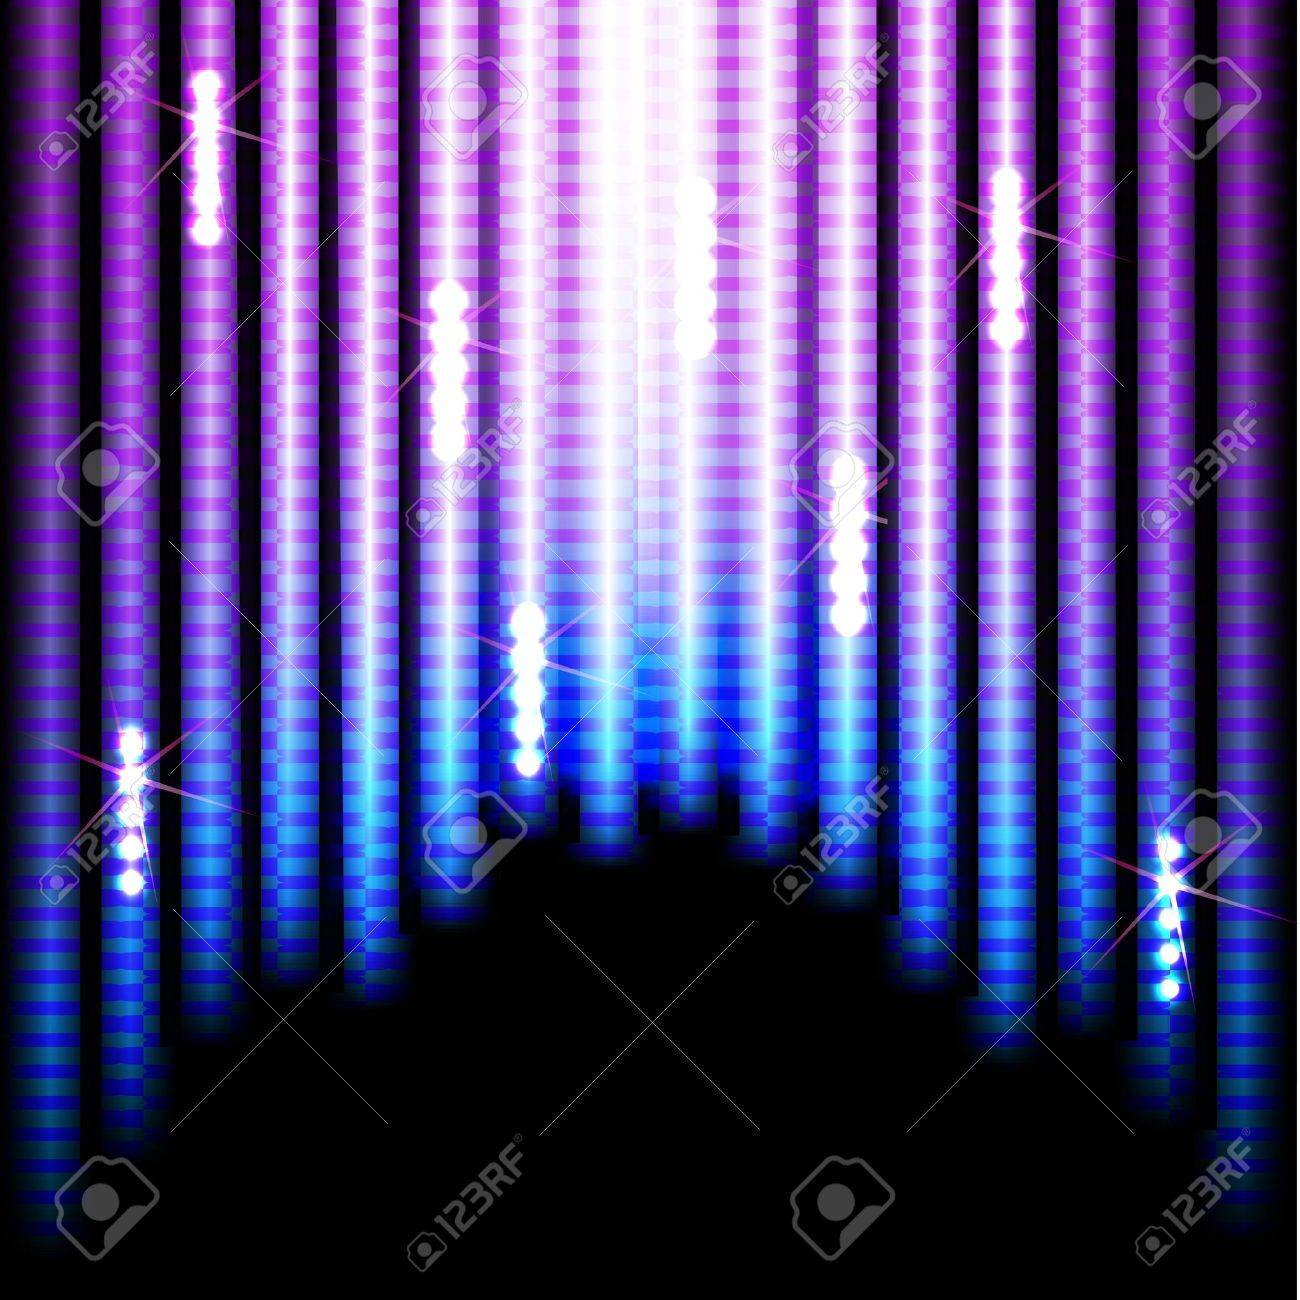 Abstract Colorful Stripes on Black Background Stock Vector - 15796079